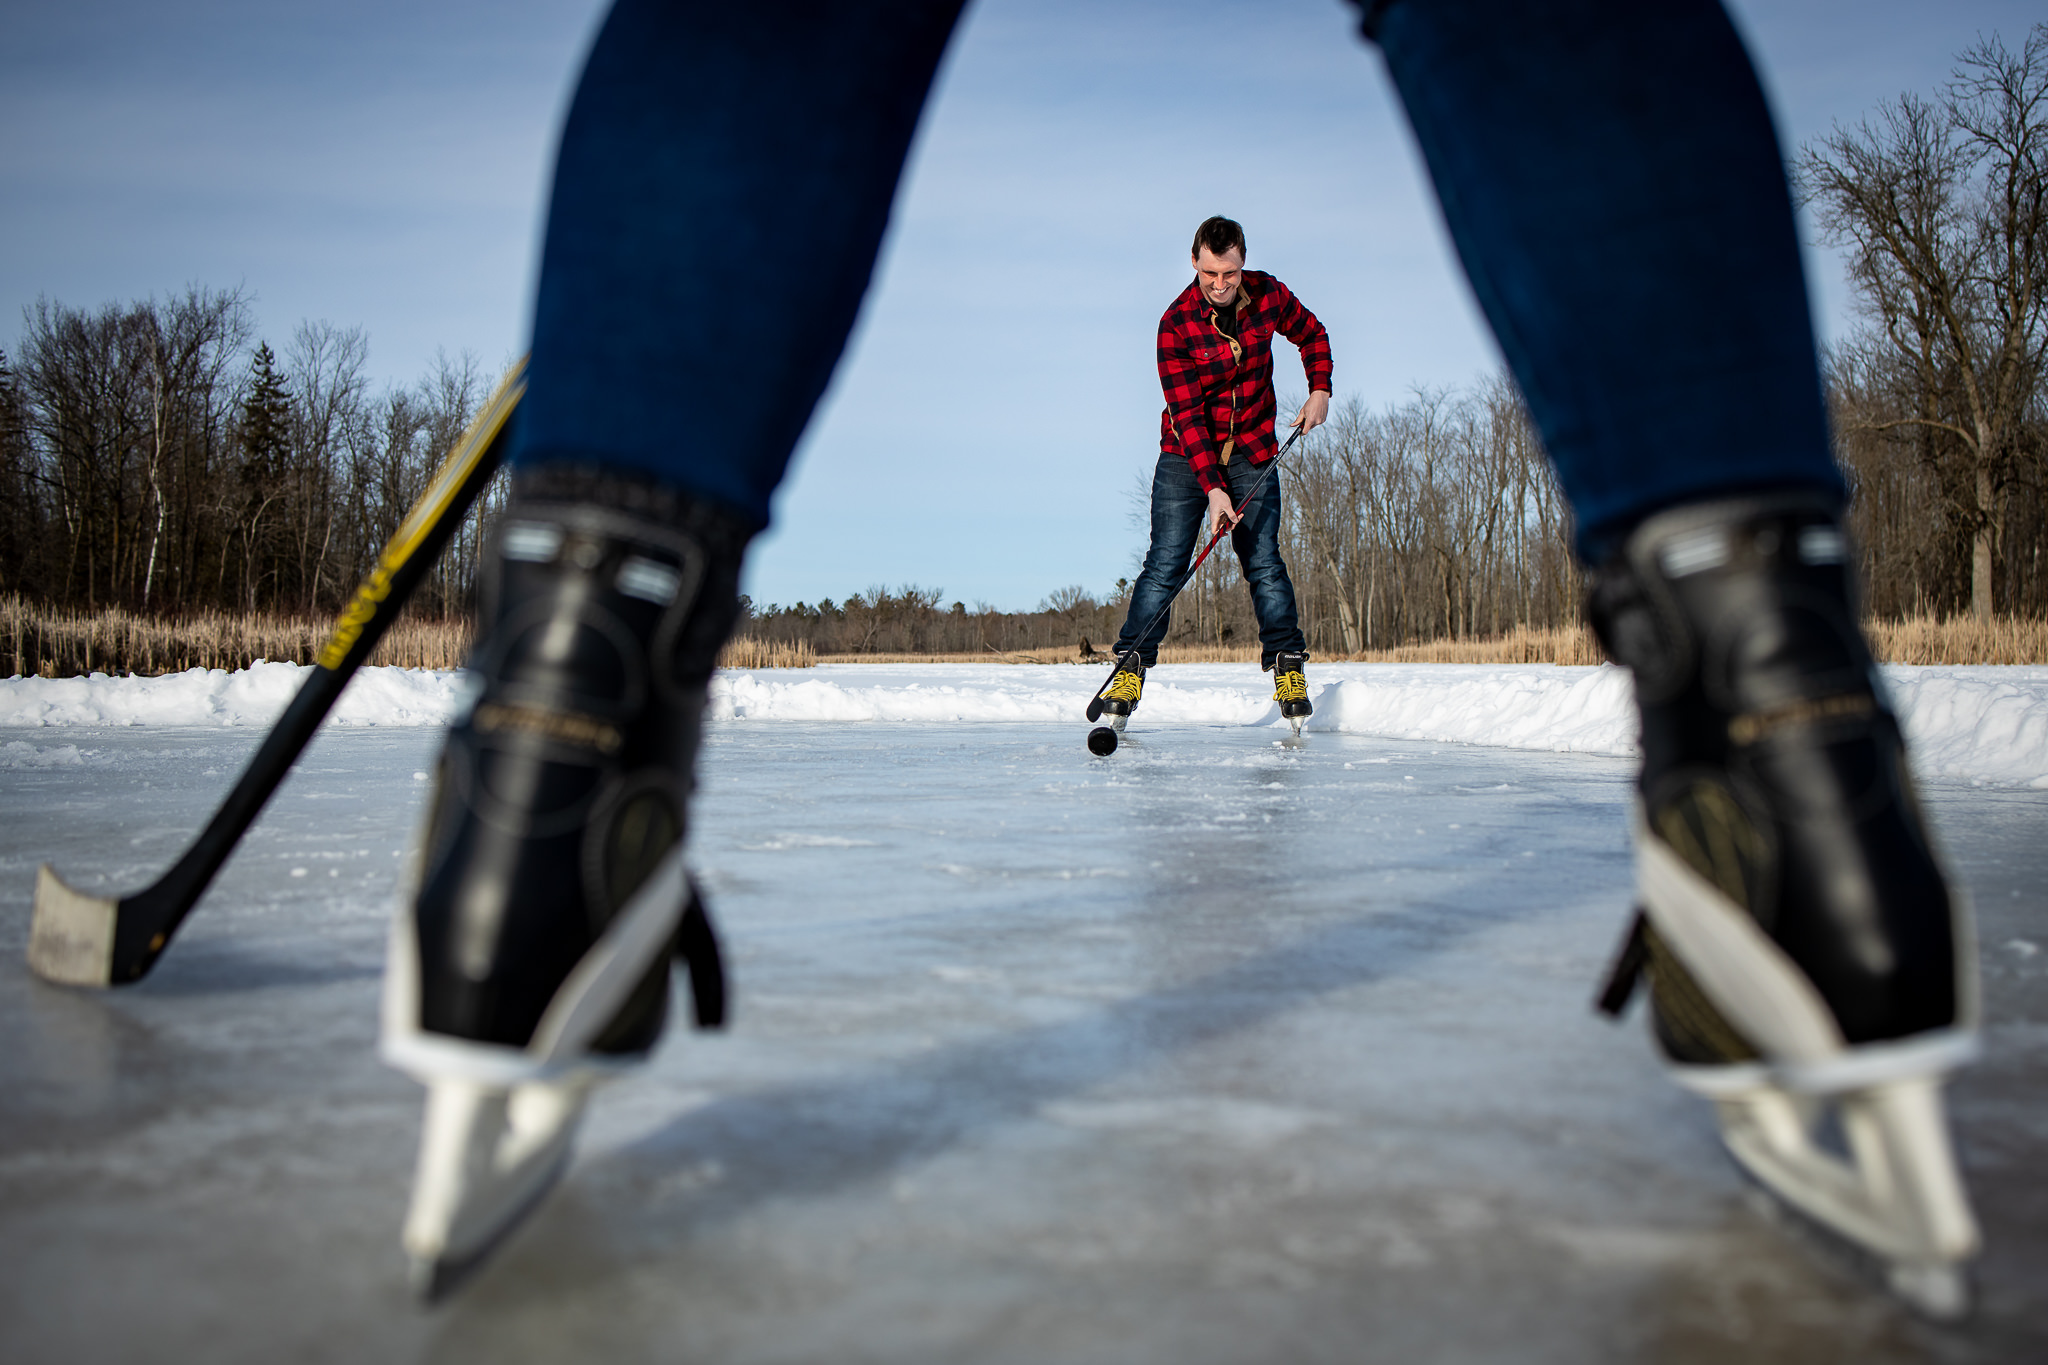 ice-skating-hockey-engagement-photos-2.jpg